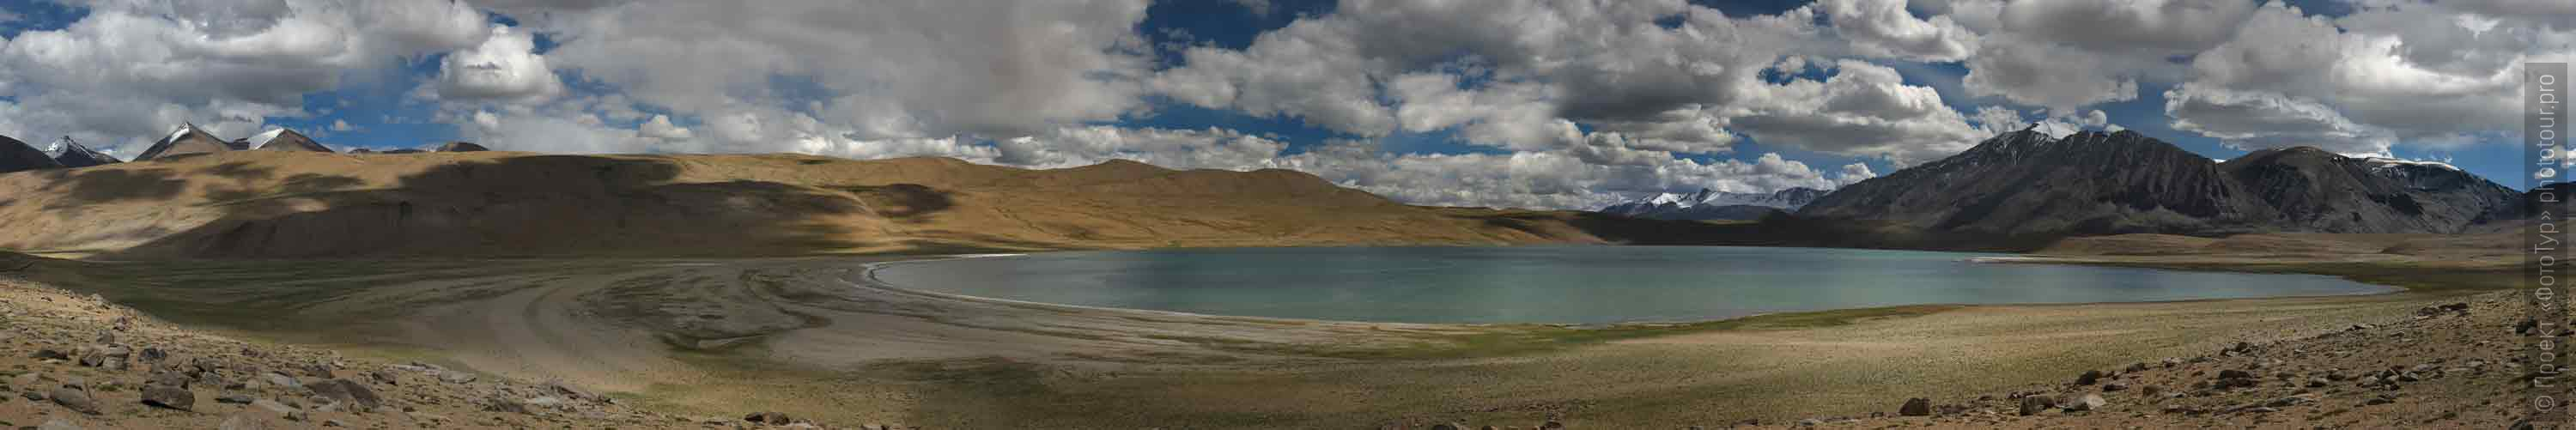 Kagyar Tso Lake. Tour Tibet Lakeside Advertising: Alpine lakes, geyser valley, Lamayuru, Colored Mountains, 01 - 10.09. 2021 year.